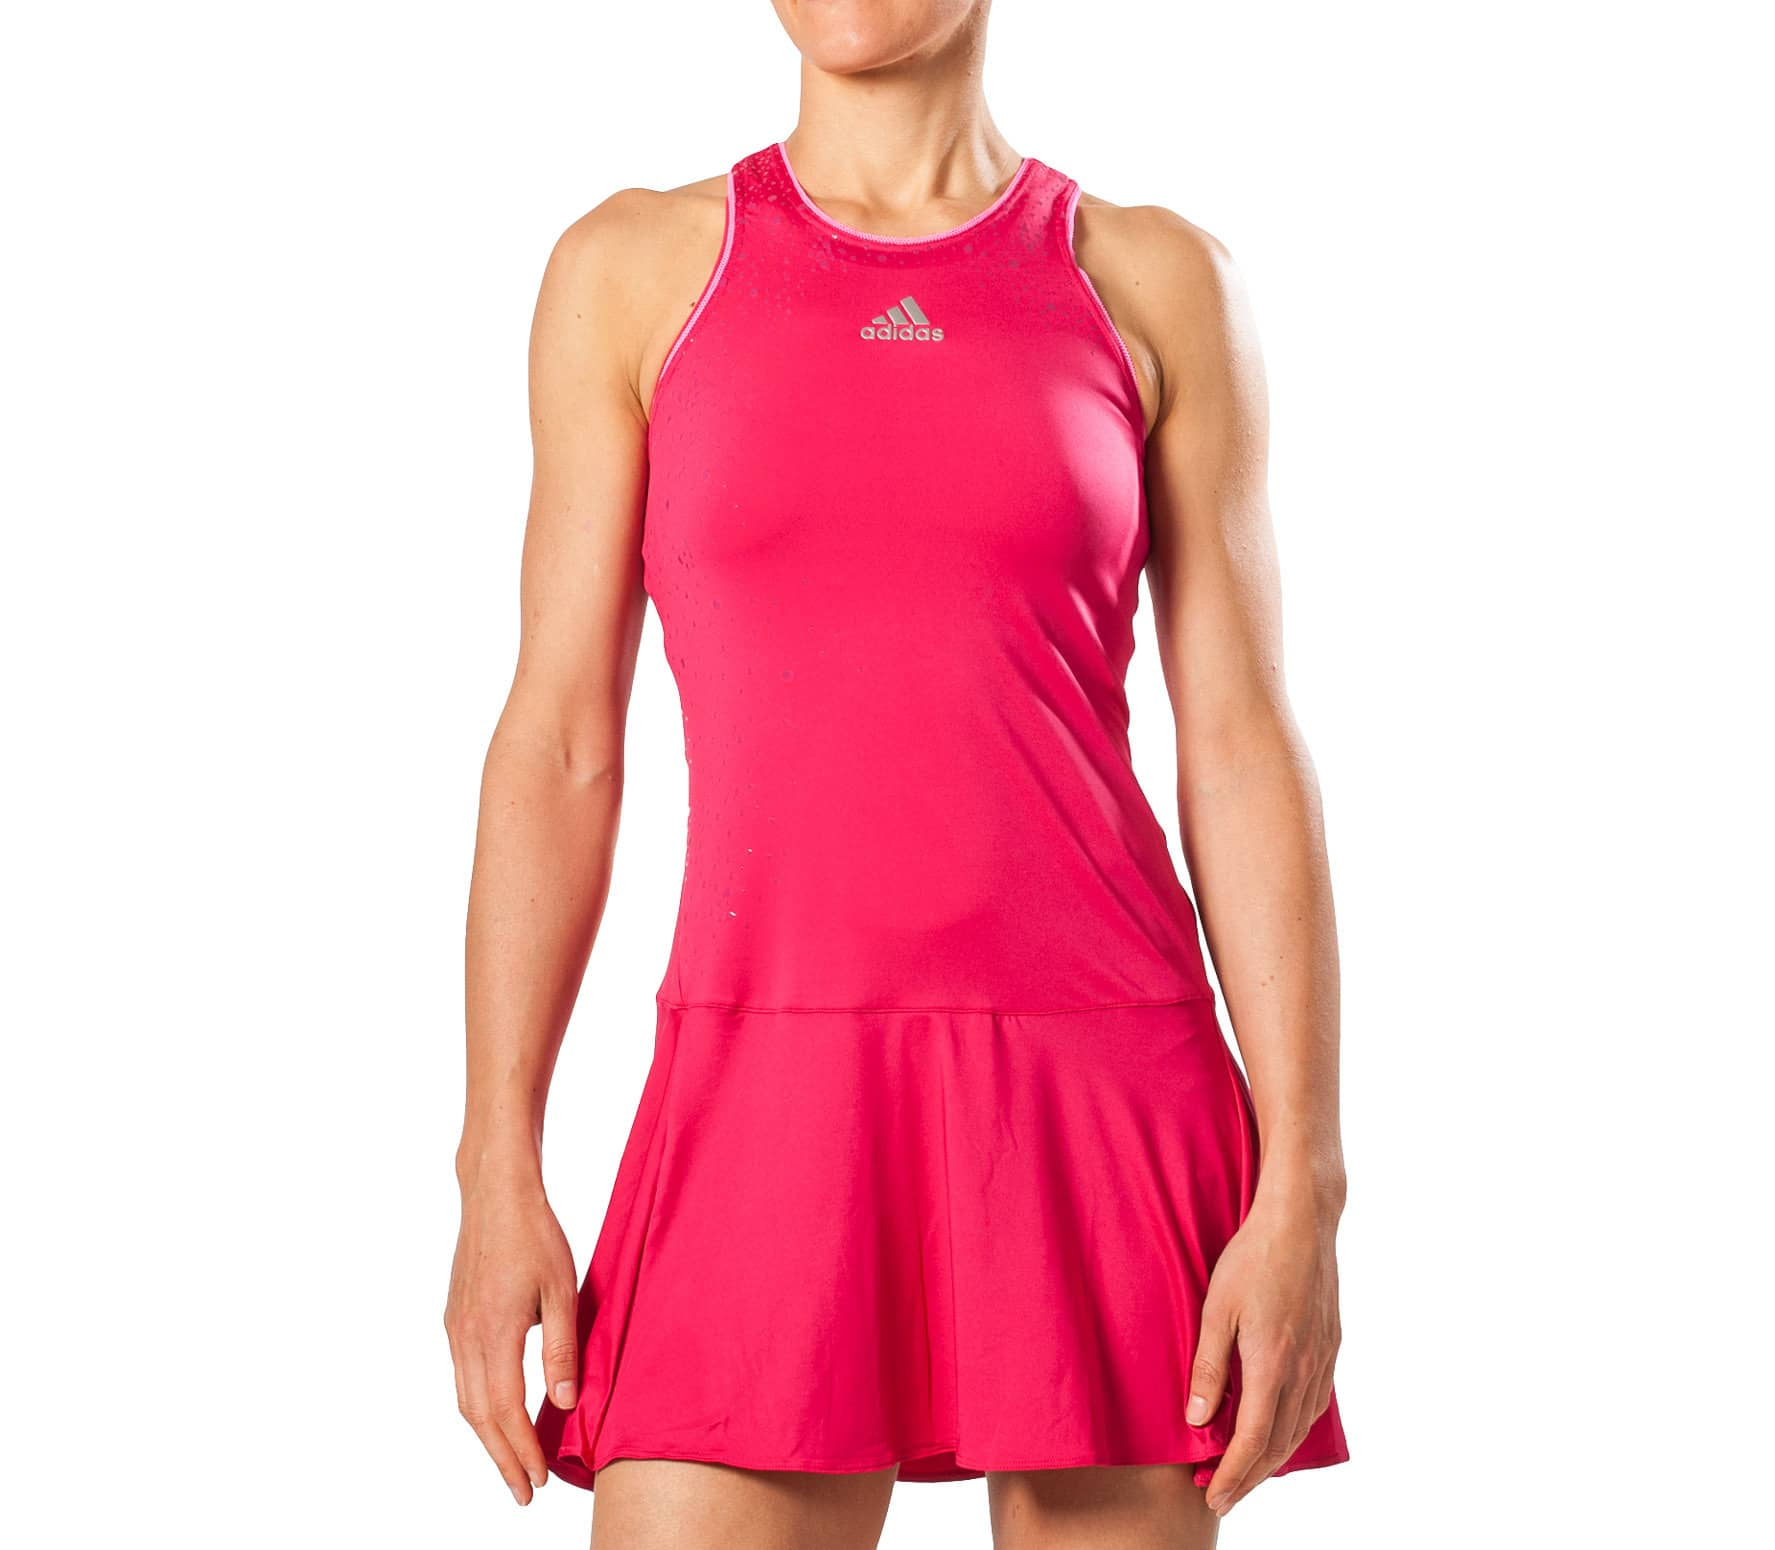 new product 81aea a15c7 adidas Adizero Dress women's tennis dress Damen